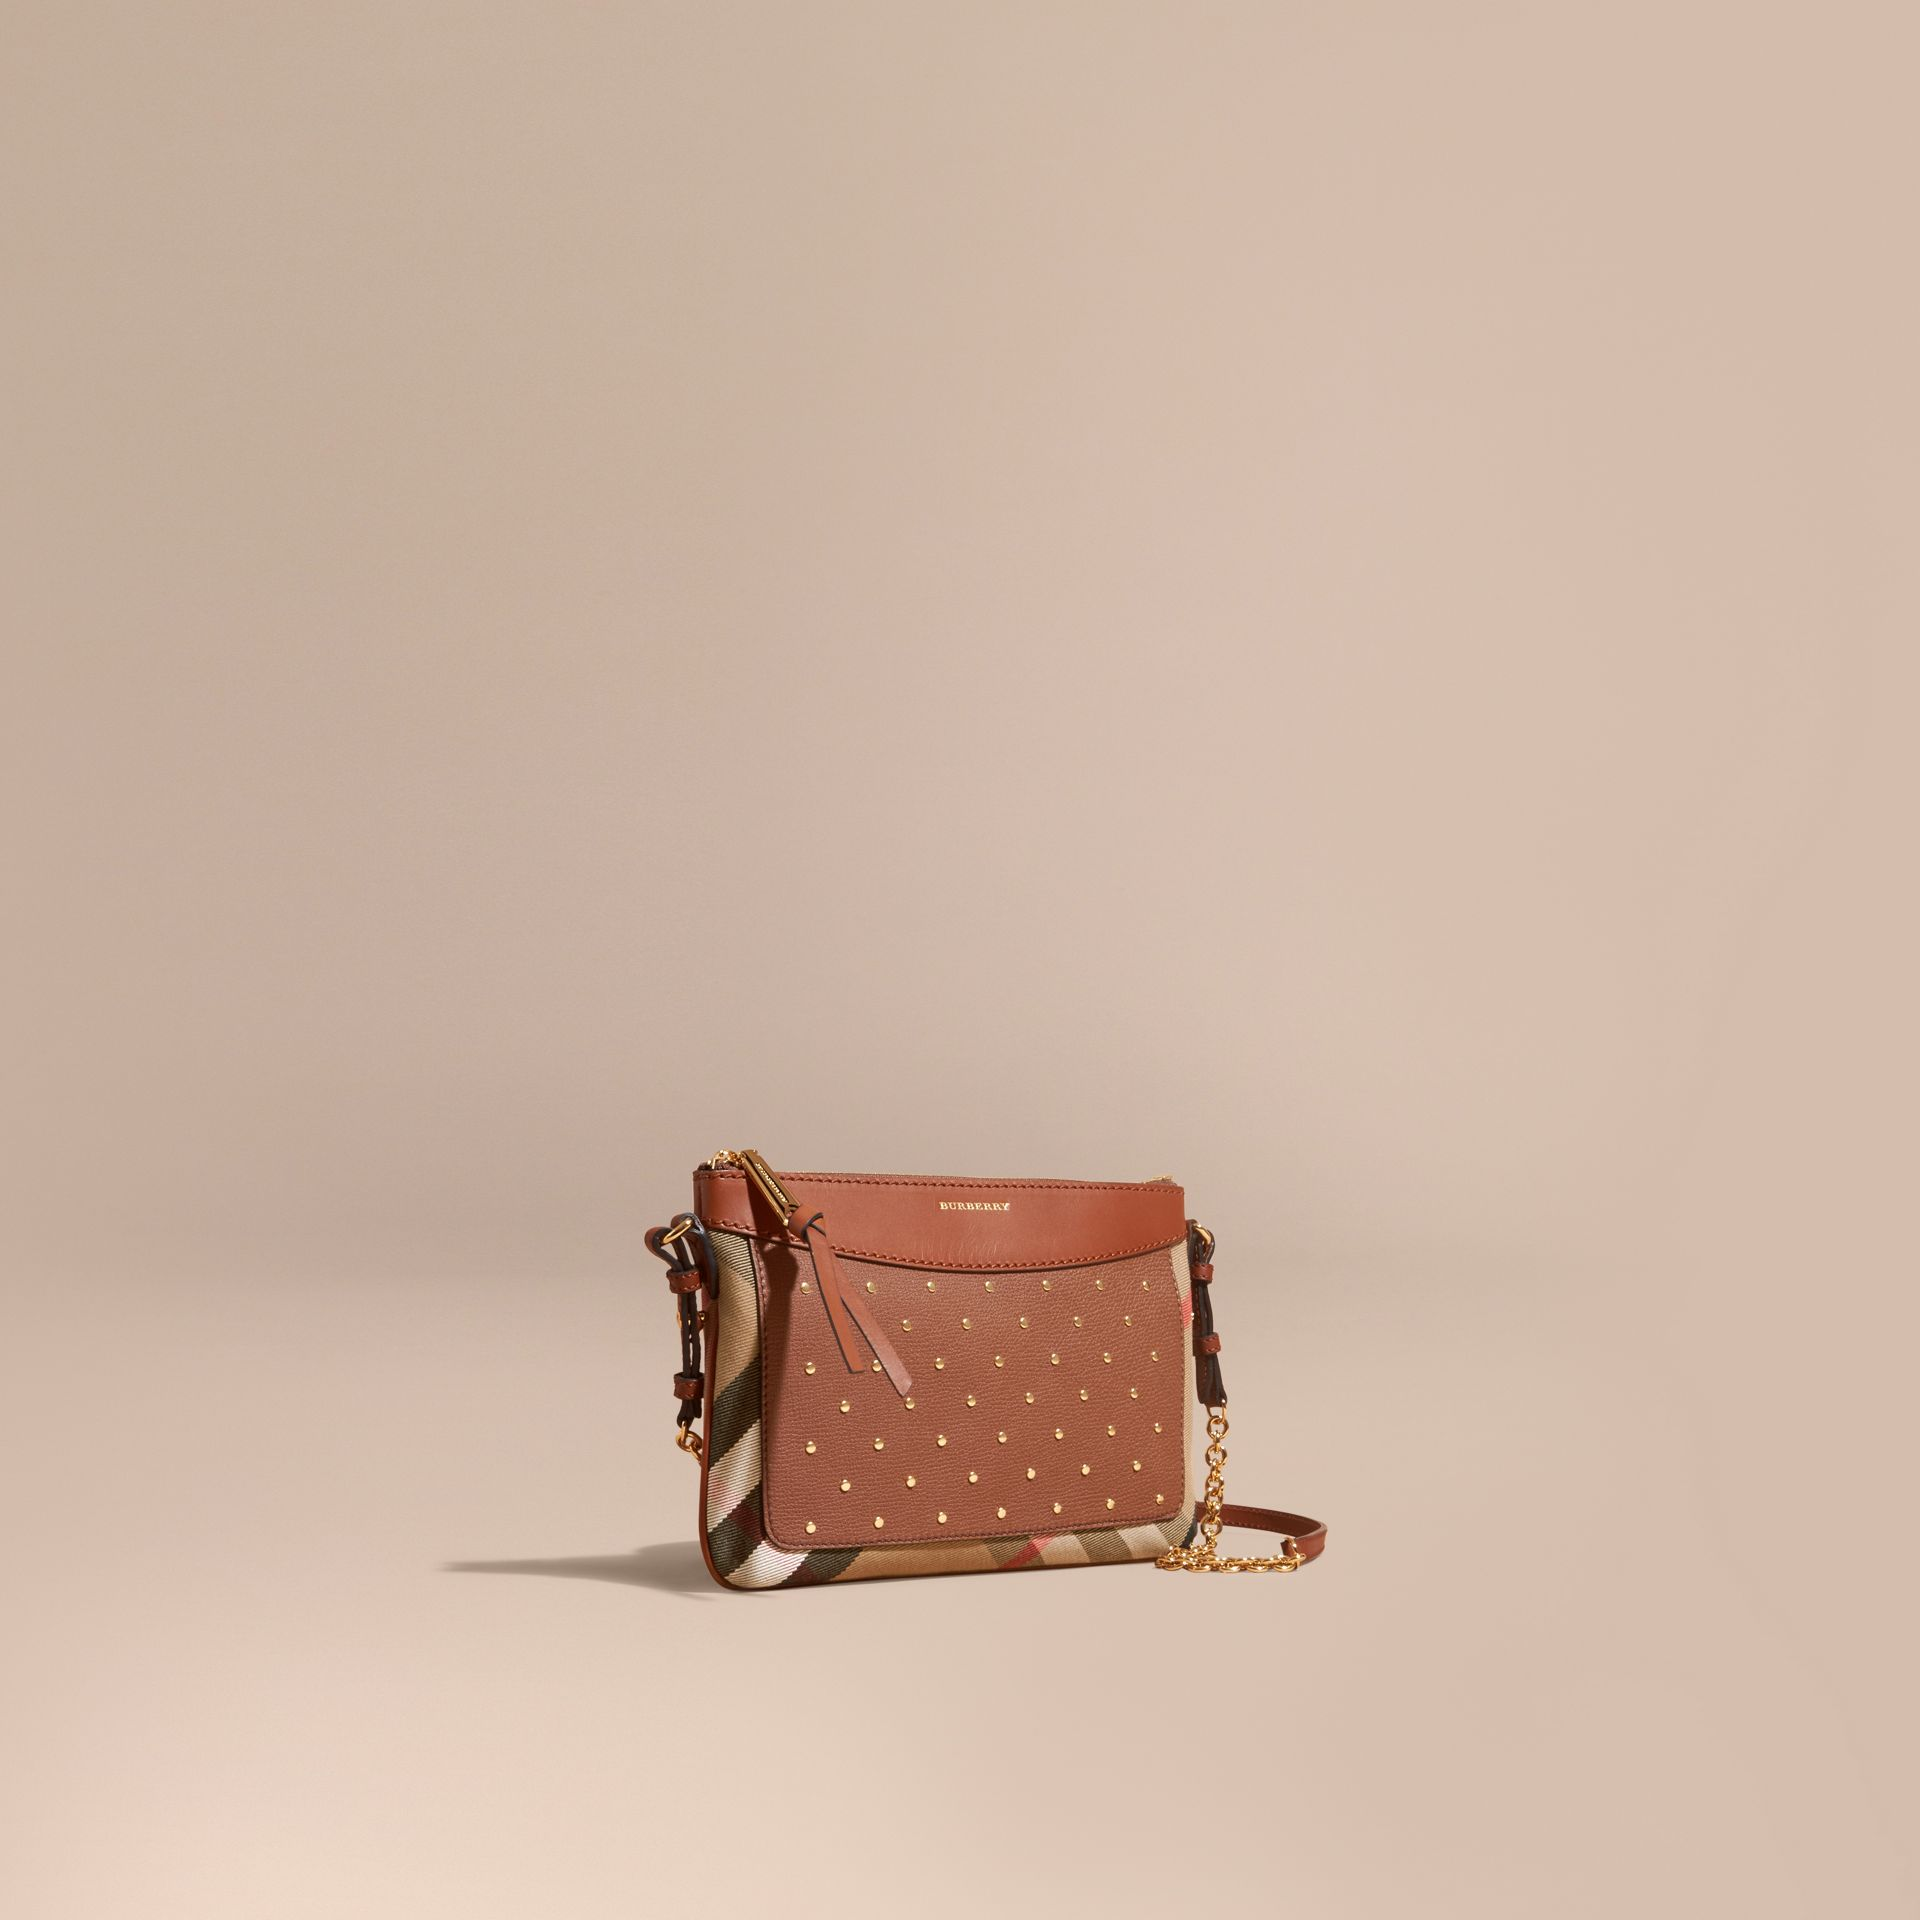 Riveted Leather and House Check Clutch Bag in Tan - gallery image 1